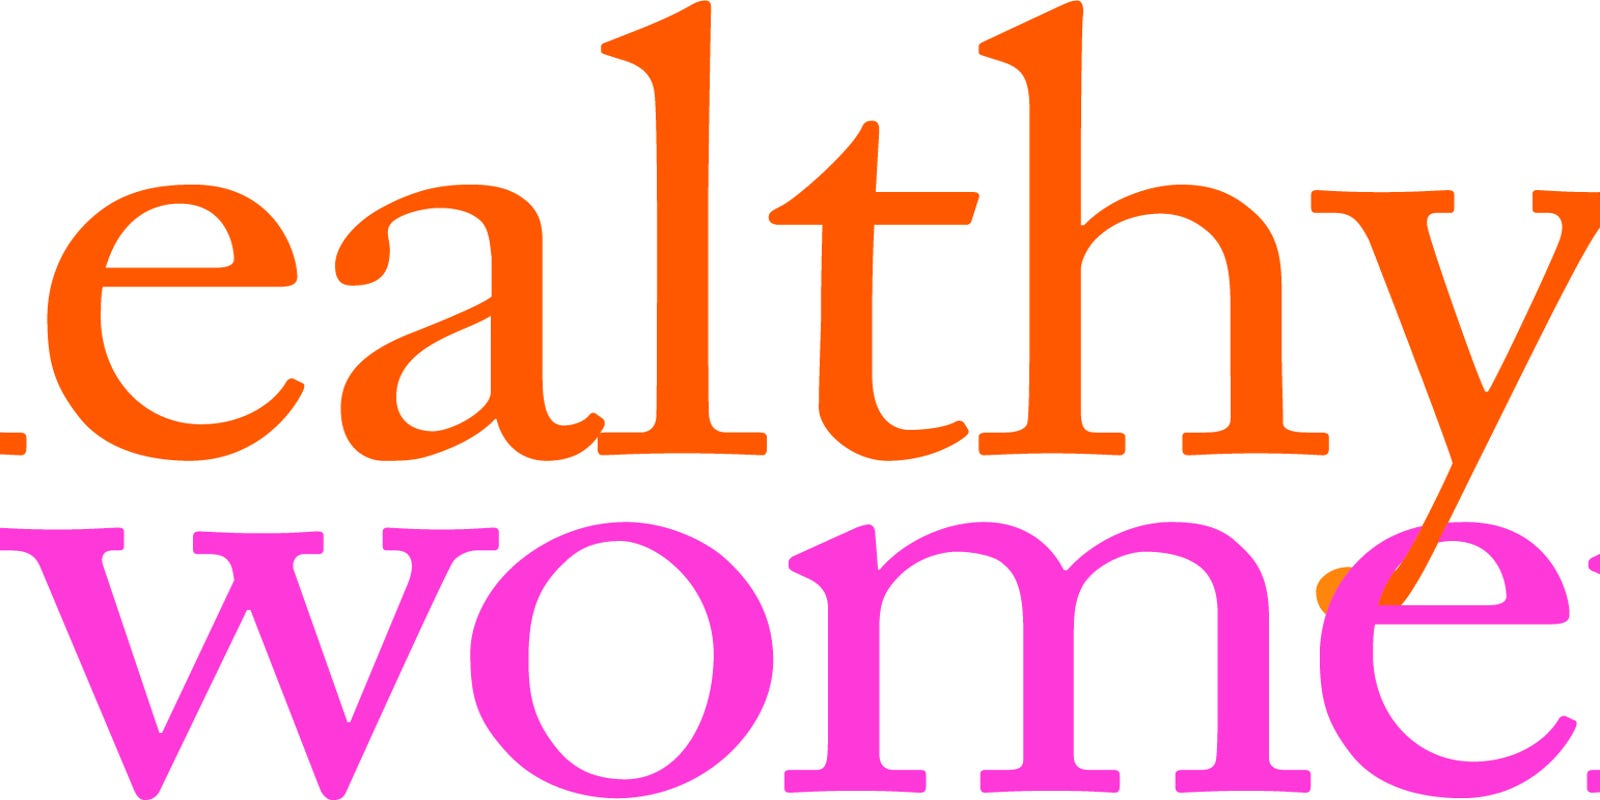 Leading women's health organization wants to make self-care a priority